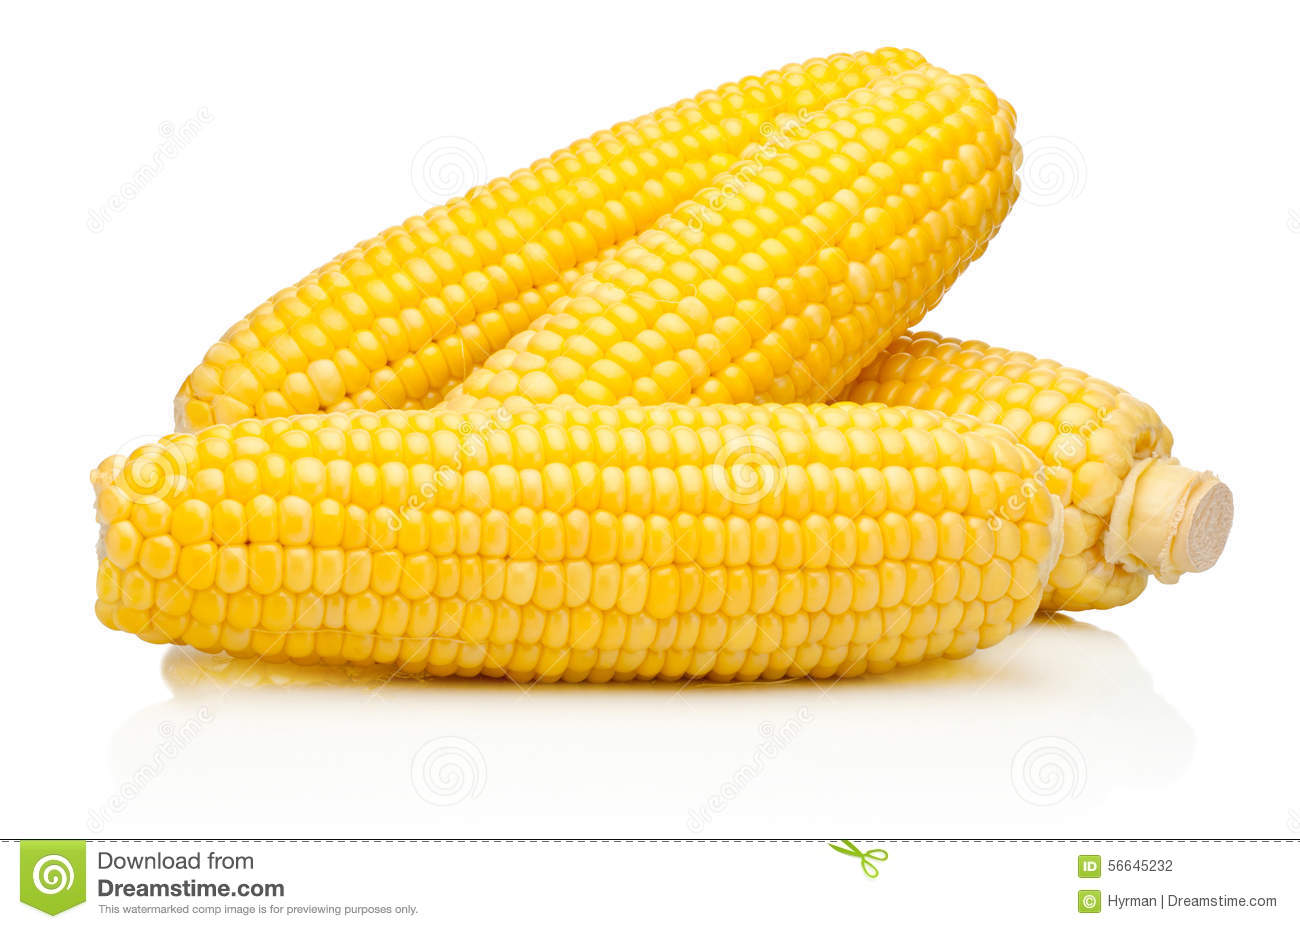 how to cook fresh corn kernels